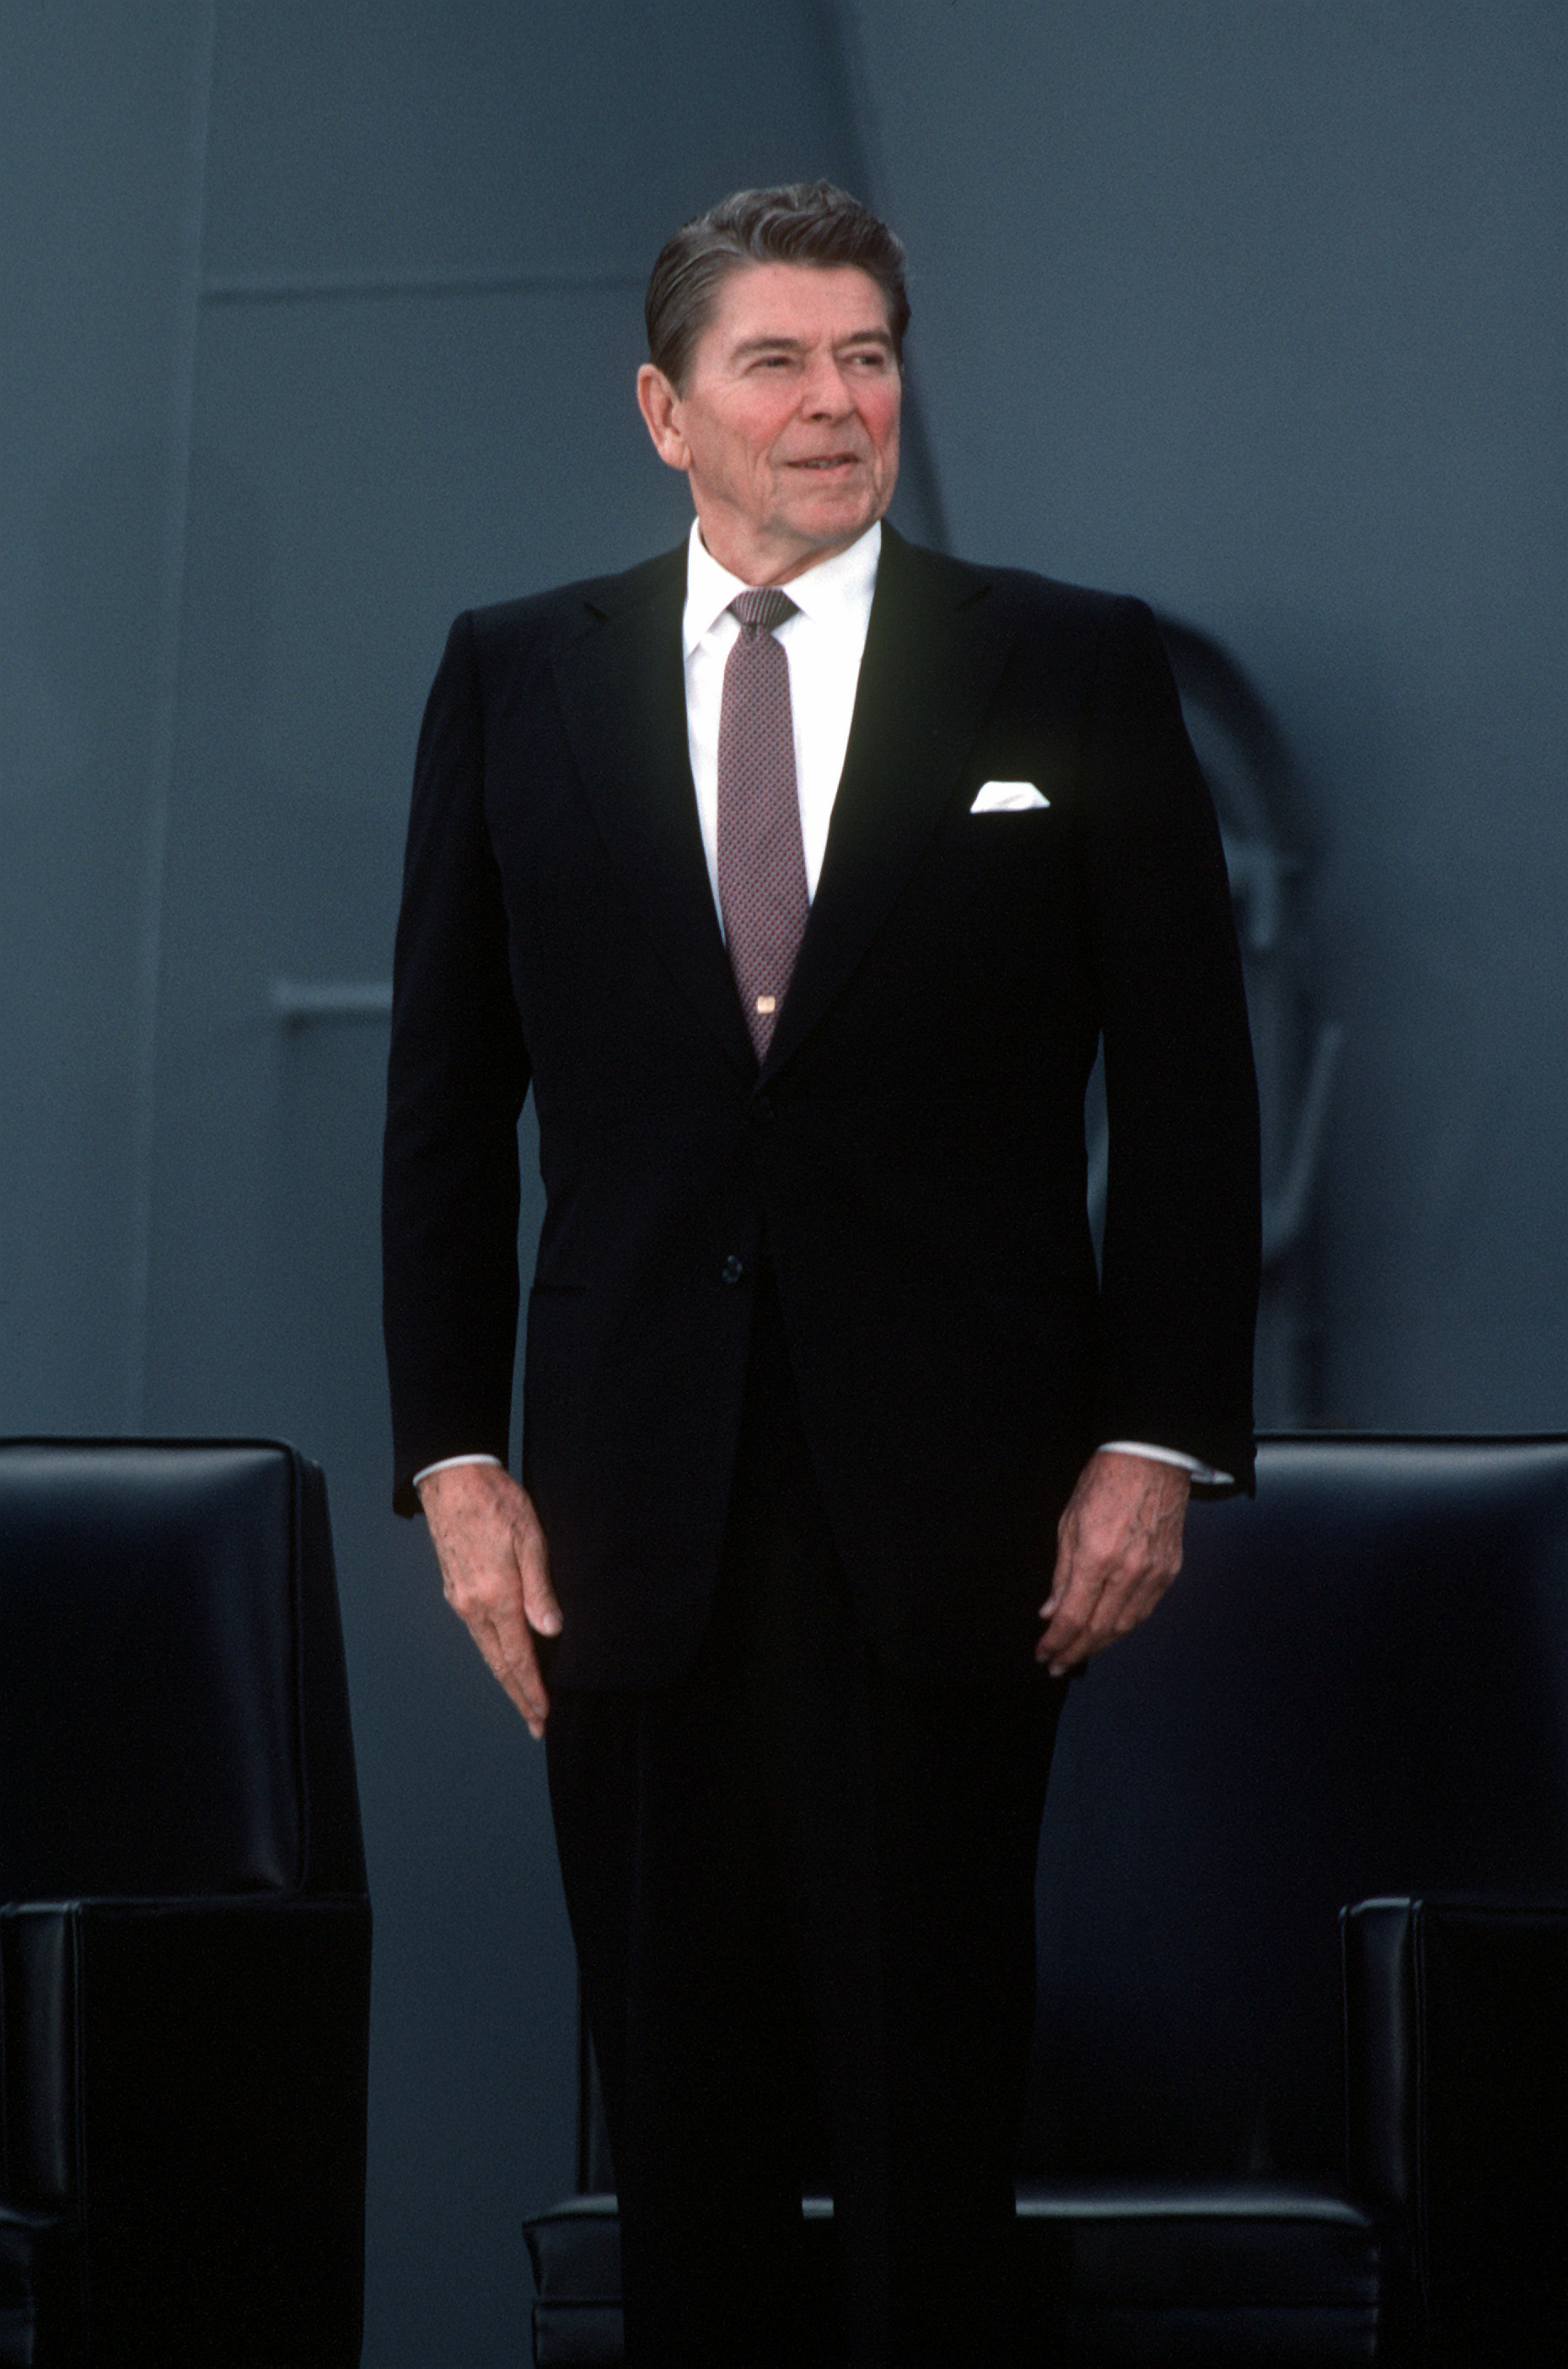 ronald reagan the 40th president of On february 6, 1911, ronald wilson reagan was born in an apartment on the second floor of a commercial building in tampico, illinois he would become a hollywood actor and union leader before serving as the 33rd governor of california from 1967 to 1975 reagan served as the 40th president of the united states from 1981 to 1989.